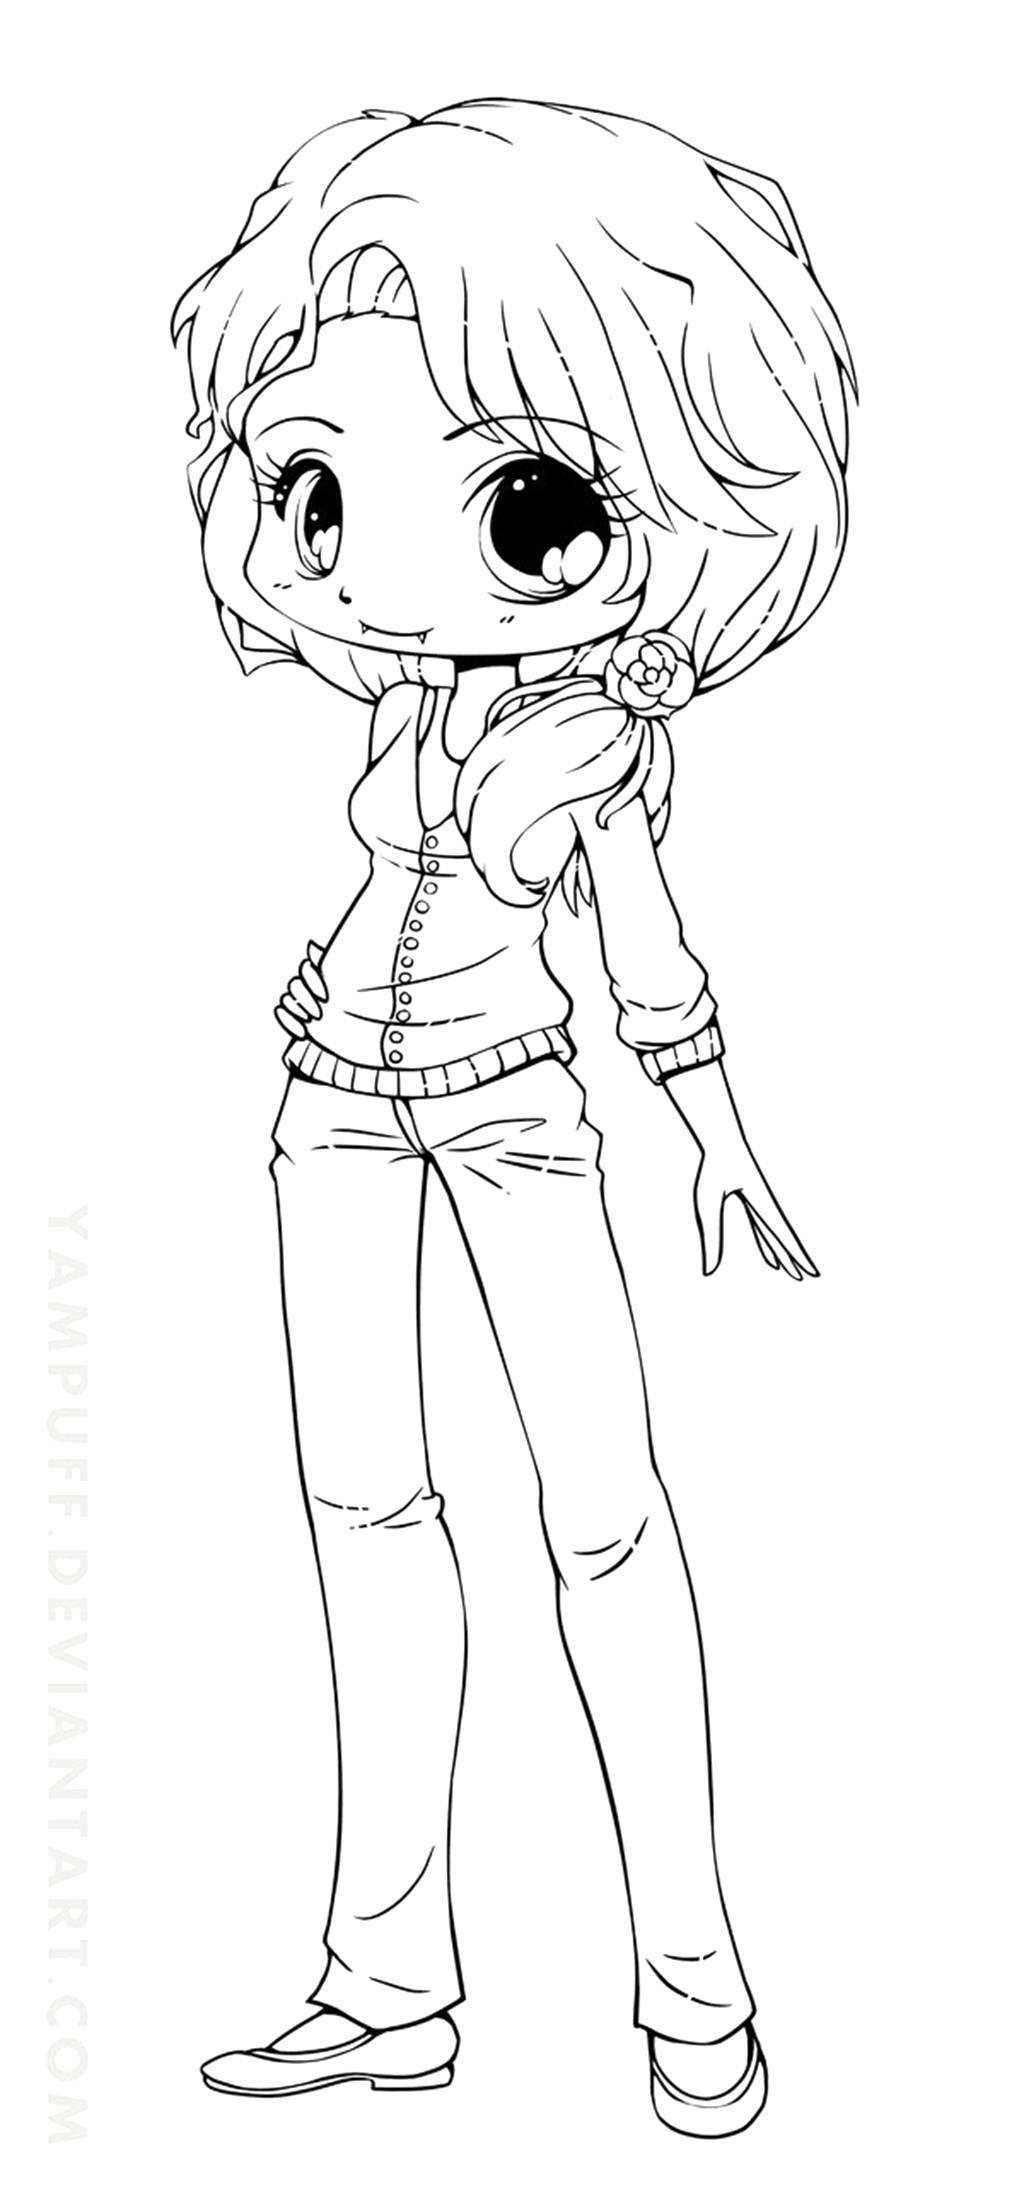 cute chibi girl coloring pages chibis free chibi coloring pages yampuff39s stuff girl pages chibi coloring cute